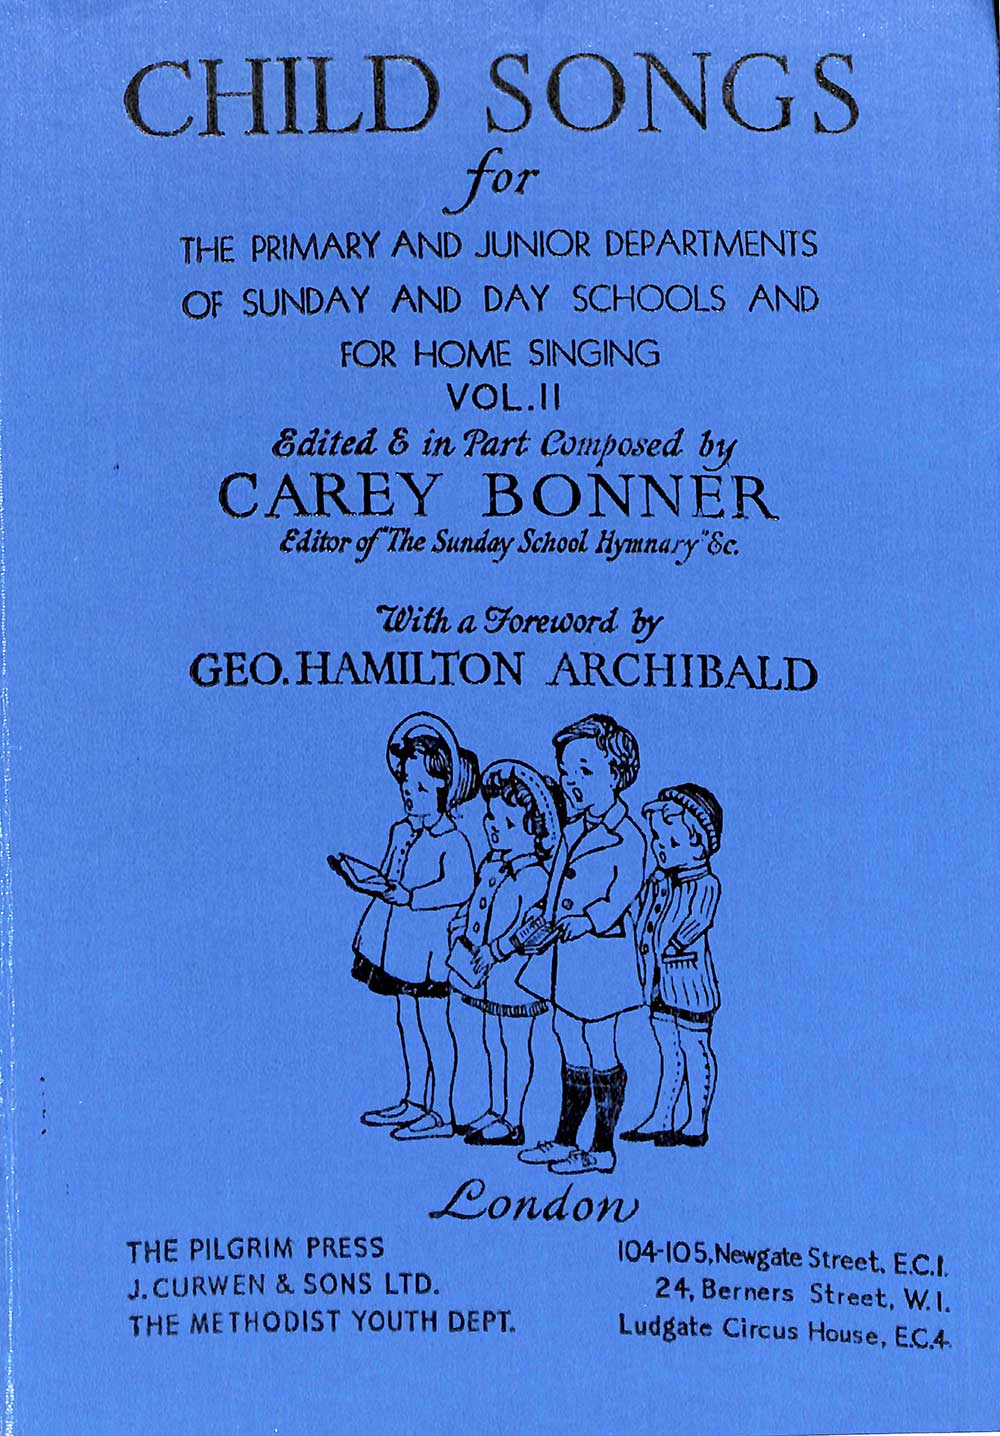 Carey Bonner (editor). <em>Child songs: for the primary and junior departments of the Sunday school and day school and for home singing. Volume II.</em> London: Pilgrim Press, 1914.